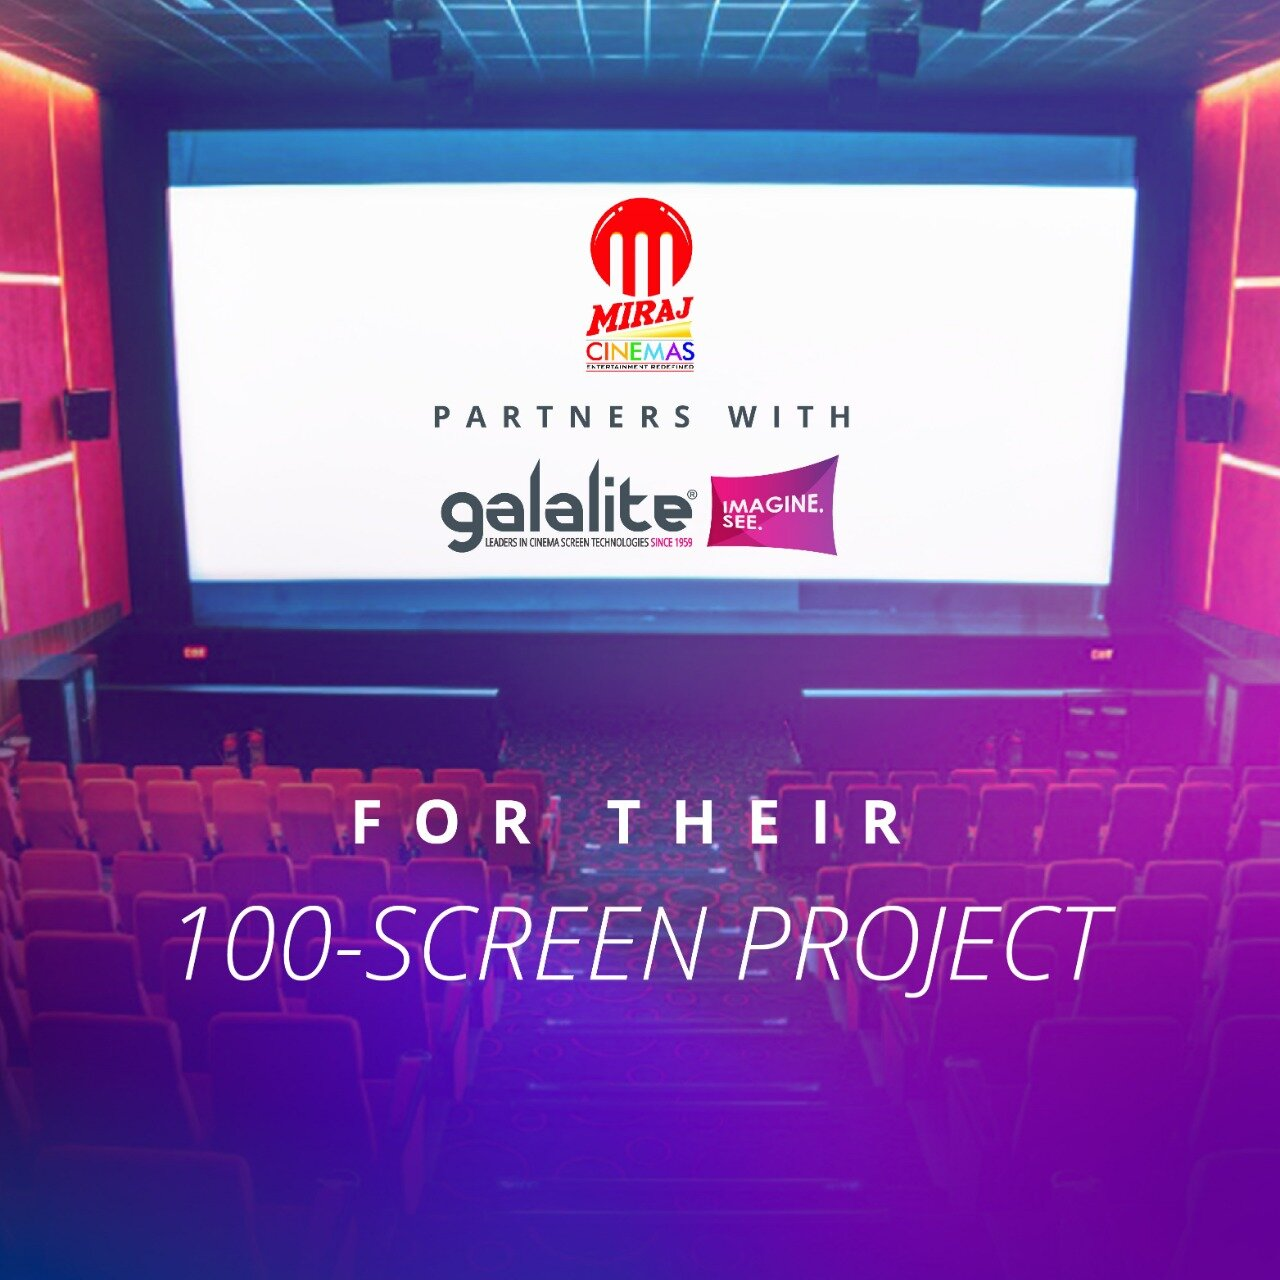 Miraj Cinemas Partners with Galalite for their 100-Screen Project